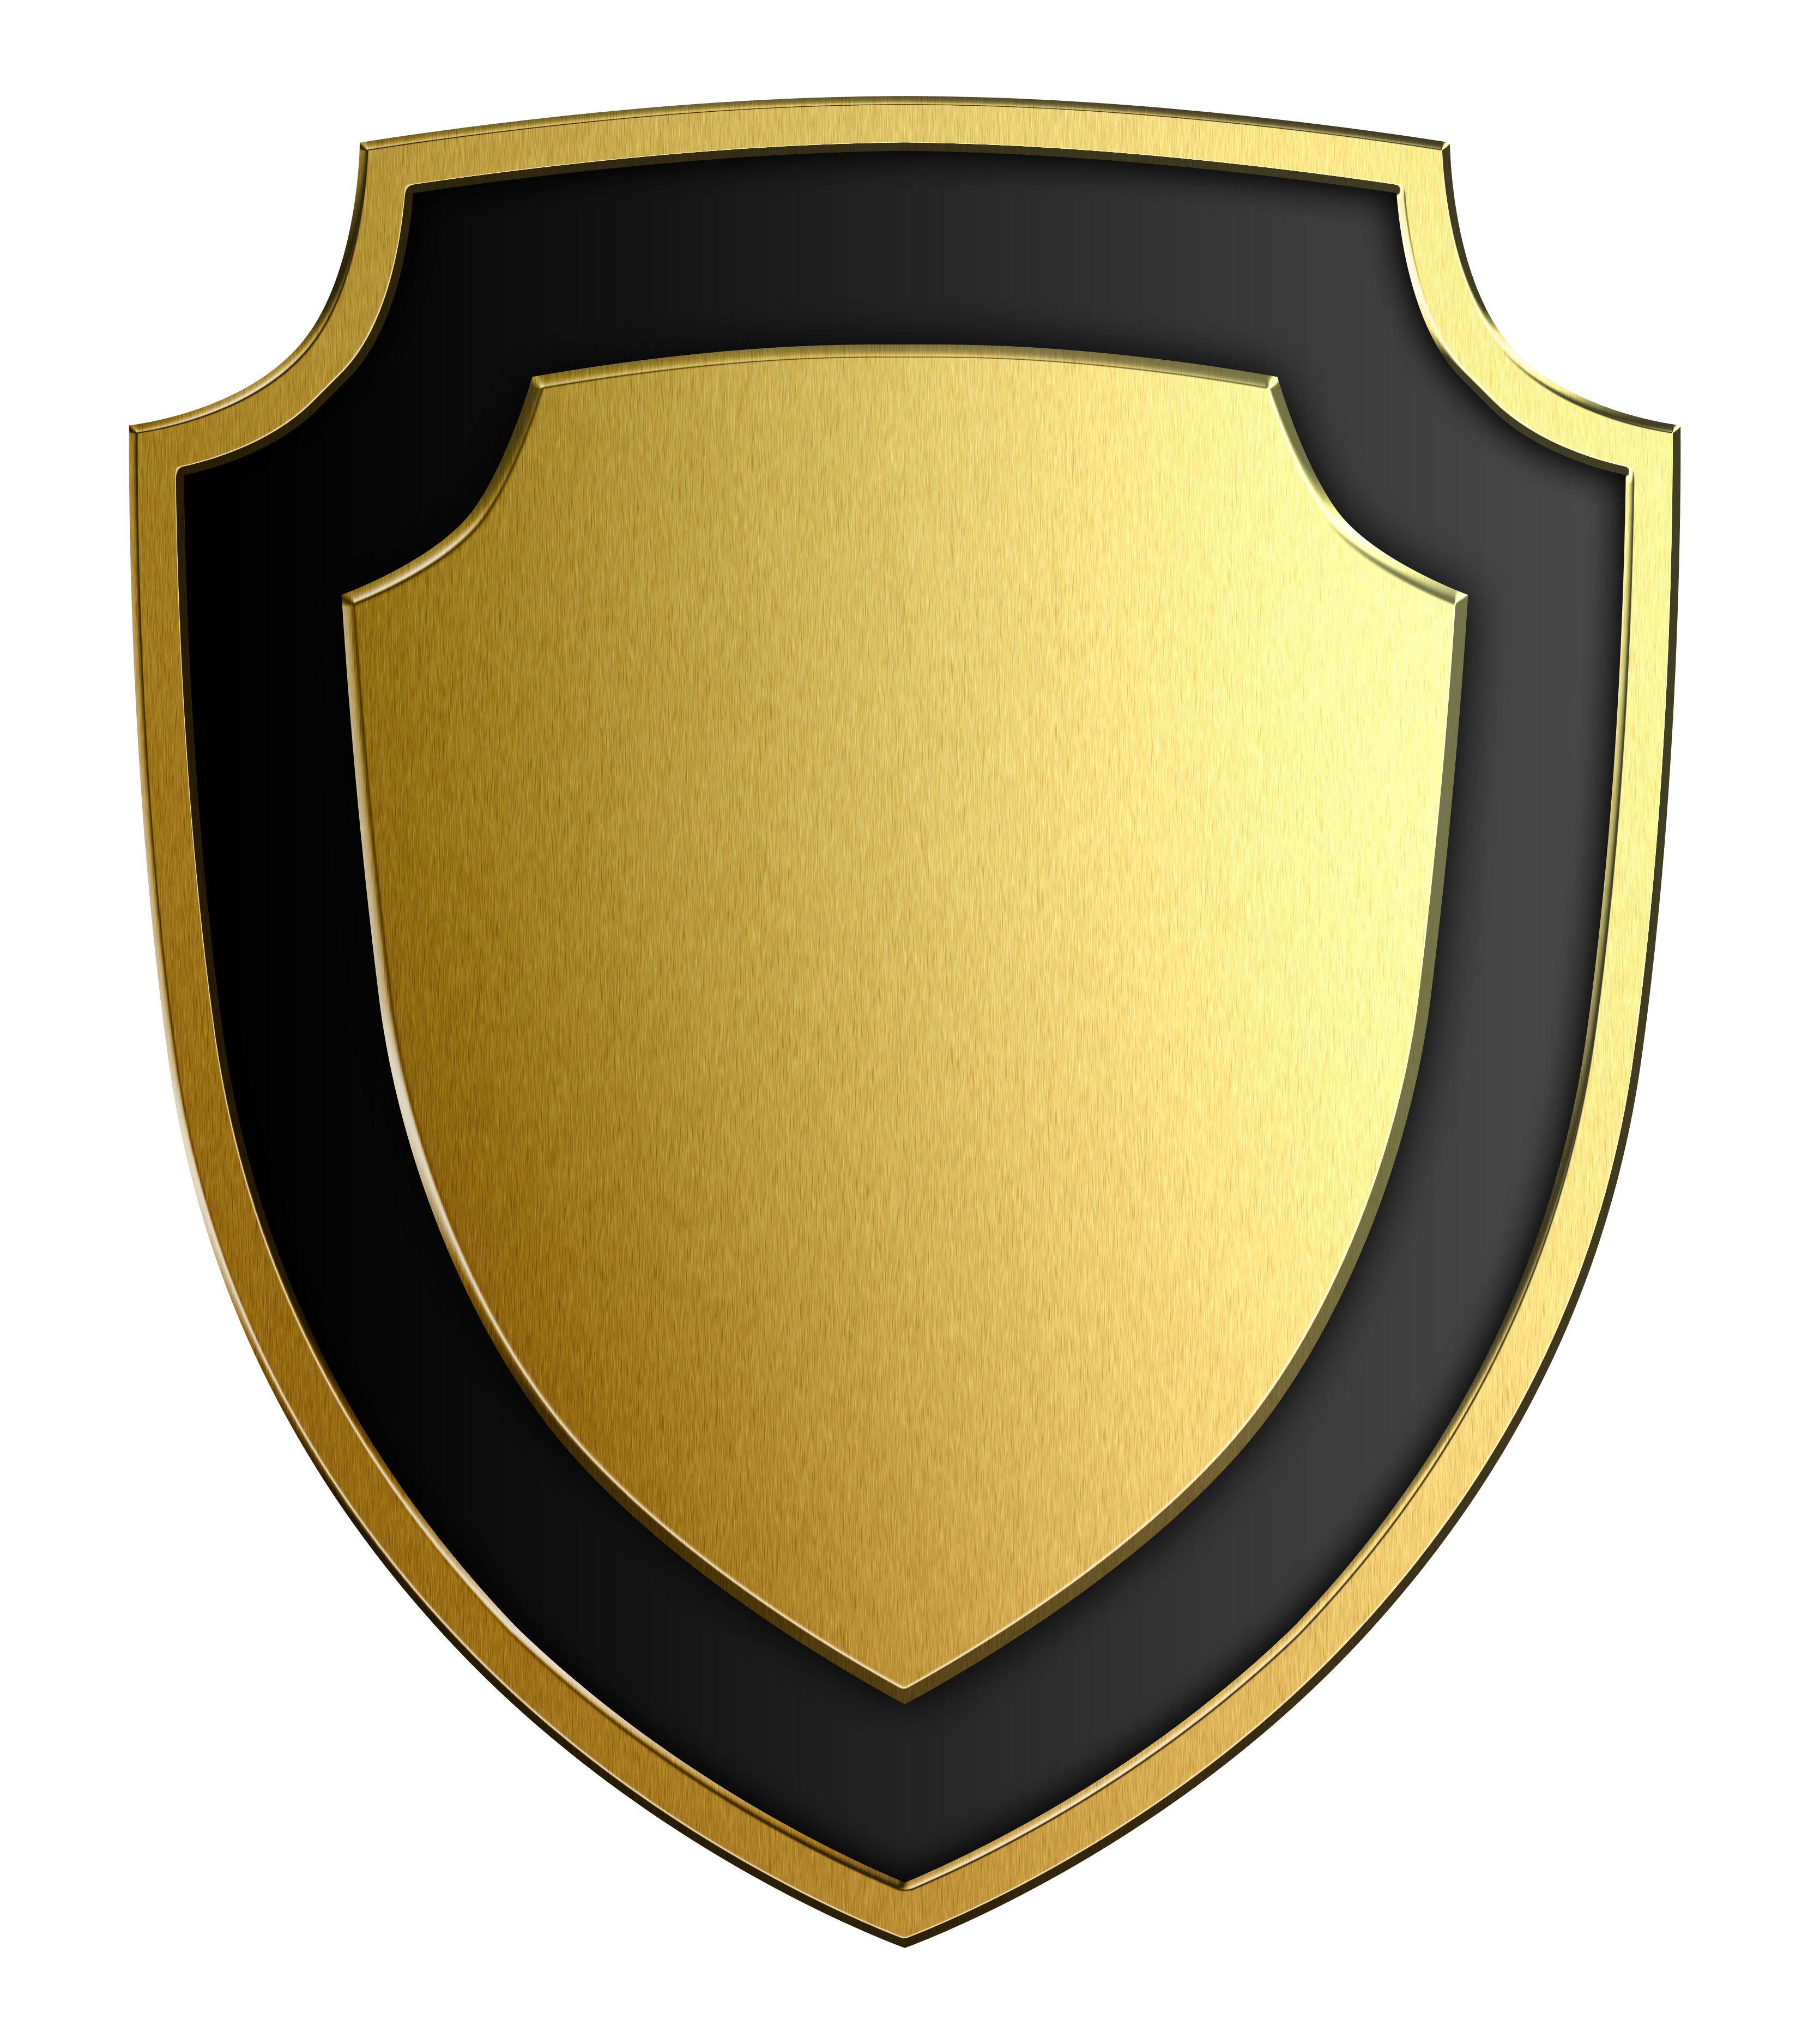 Shield PNG image, free download, pictures